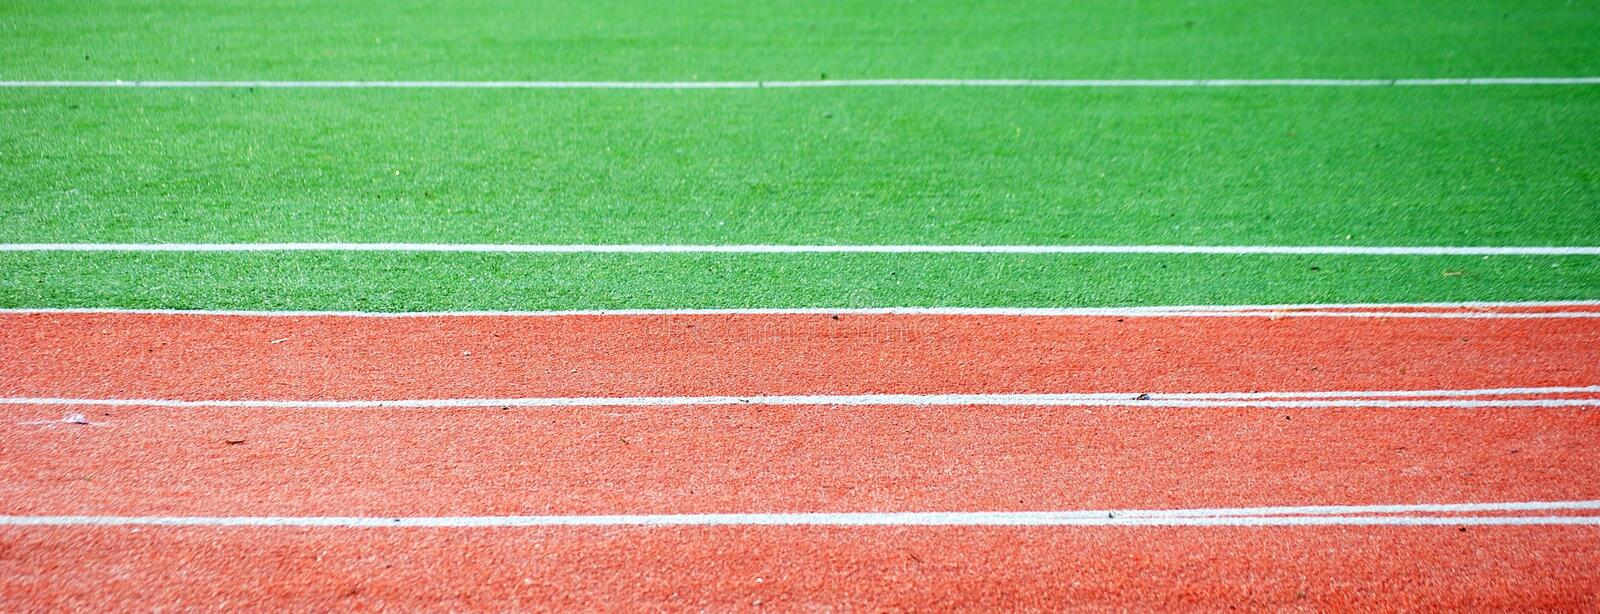 Download Running track stock photo. Image of path, sport, color - 7826700